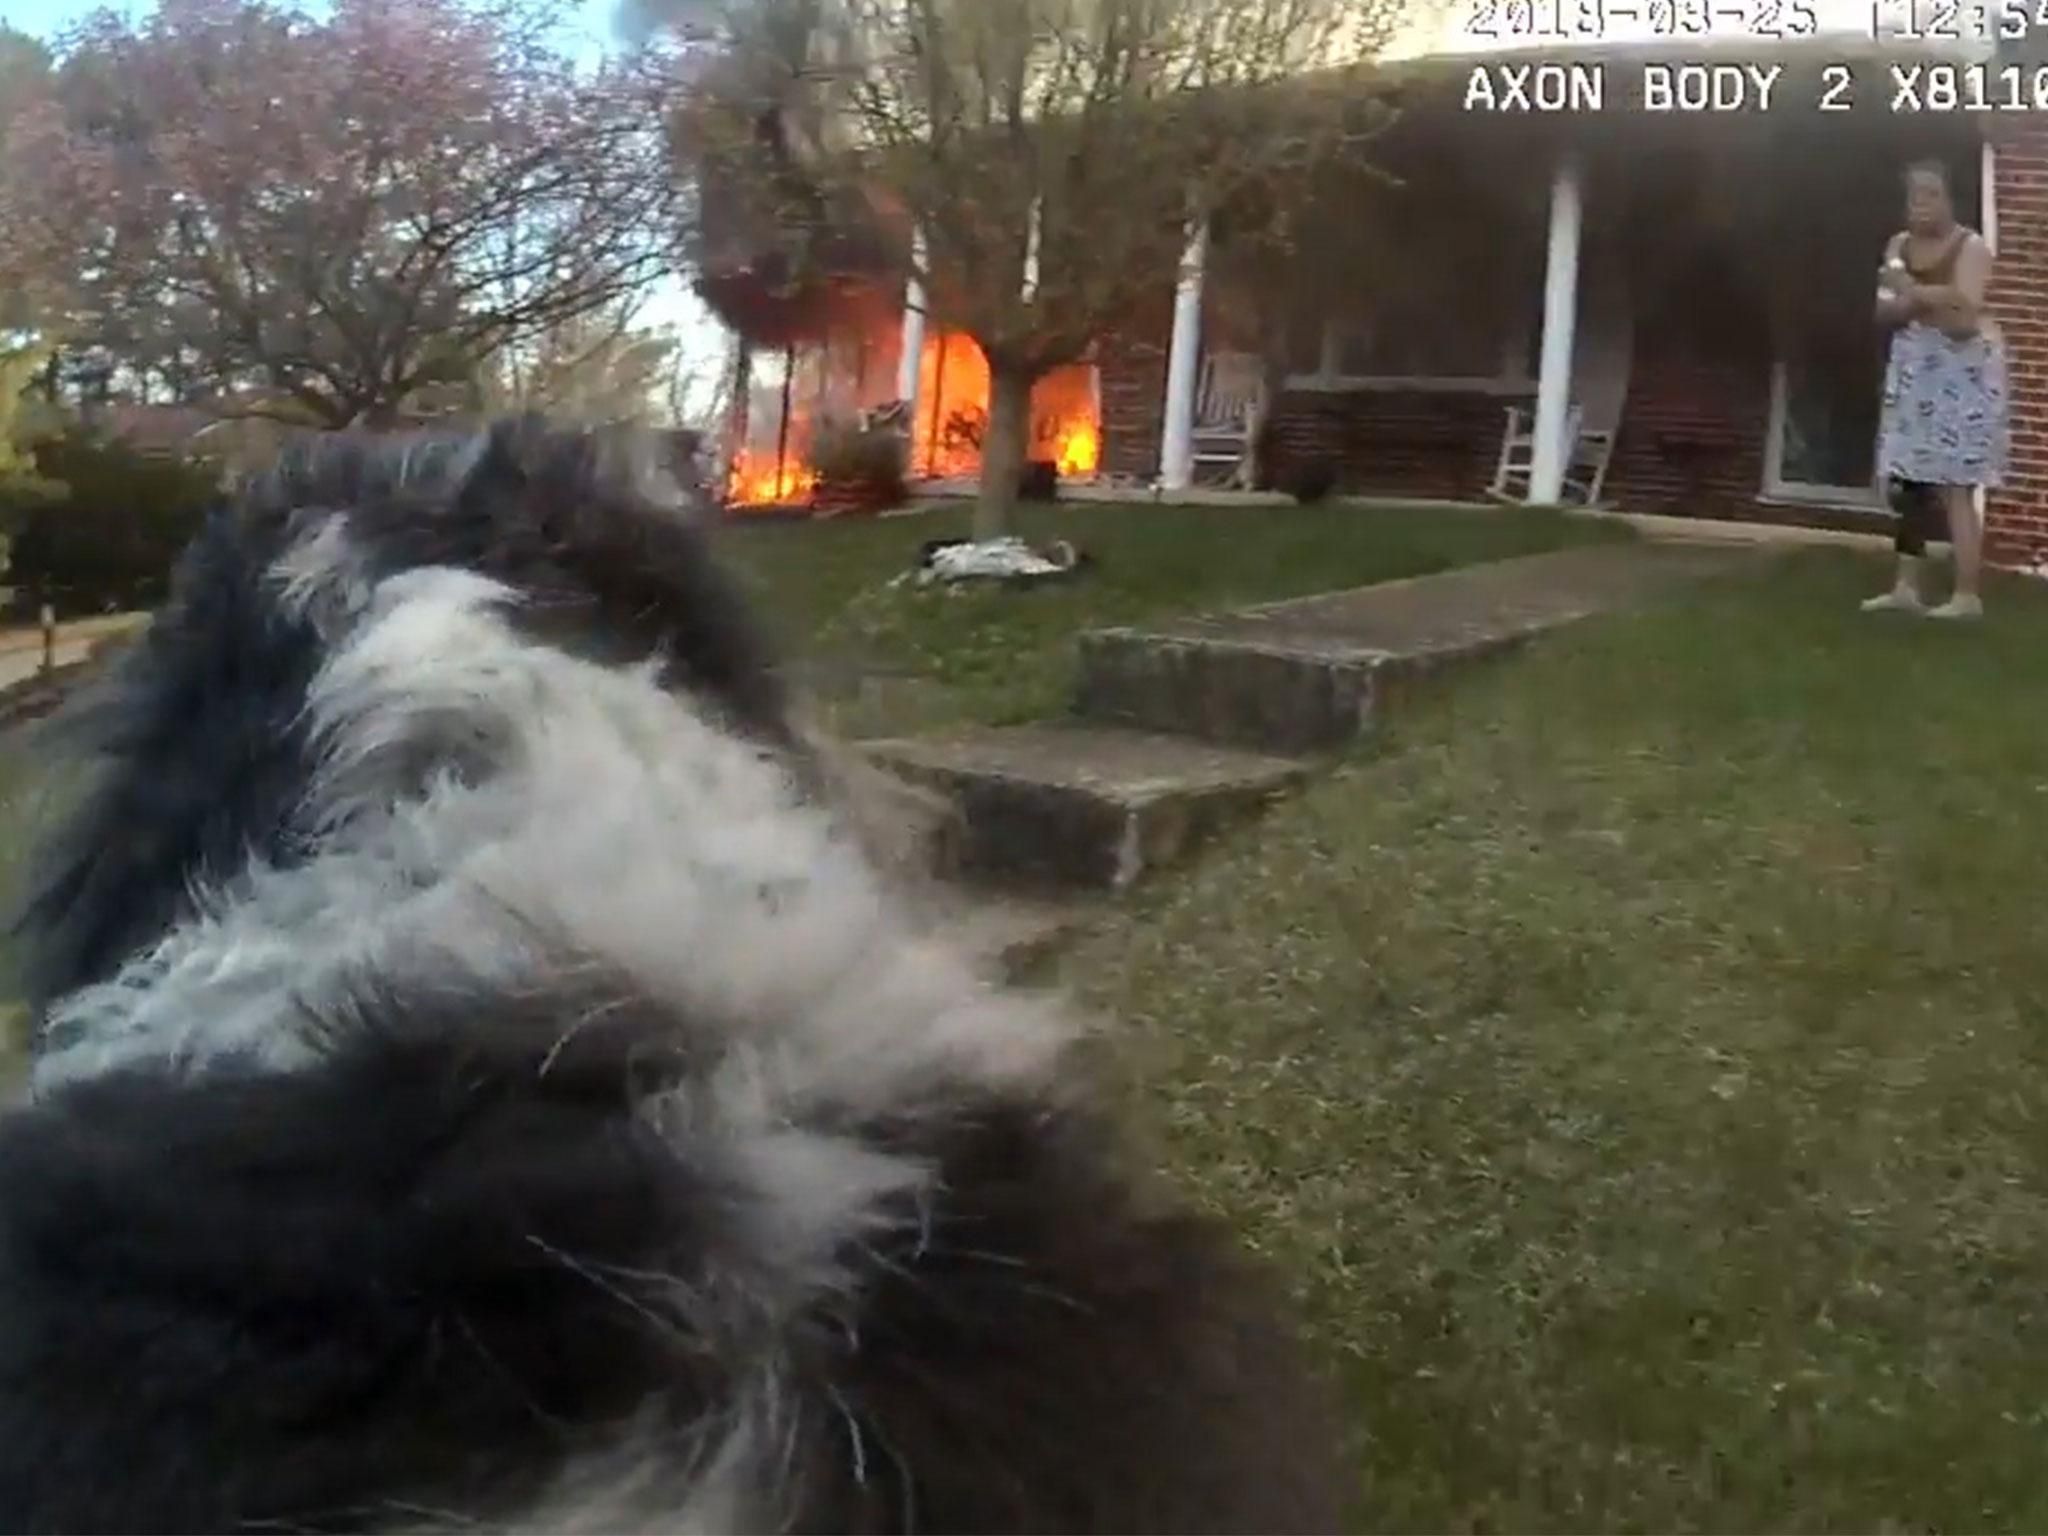 Bodycam footage shows police officer rescuing dog from house fire